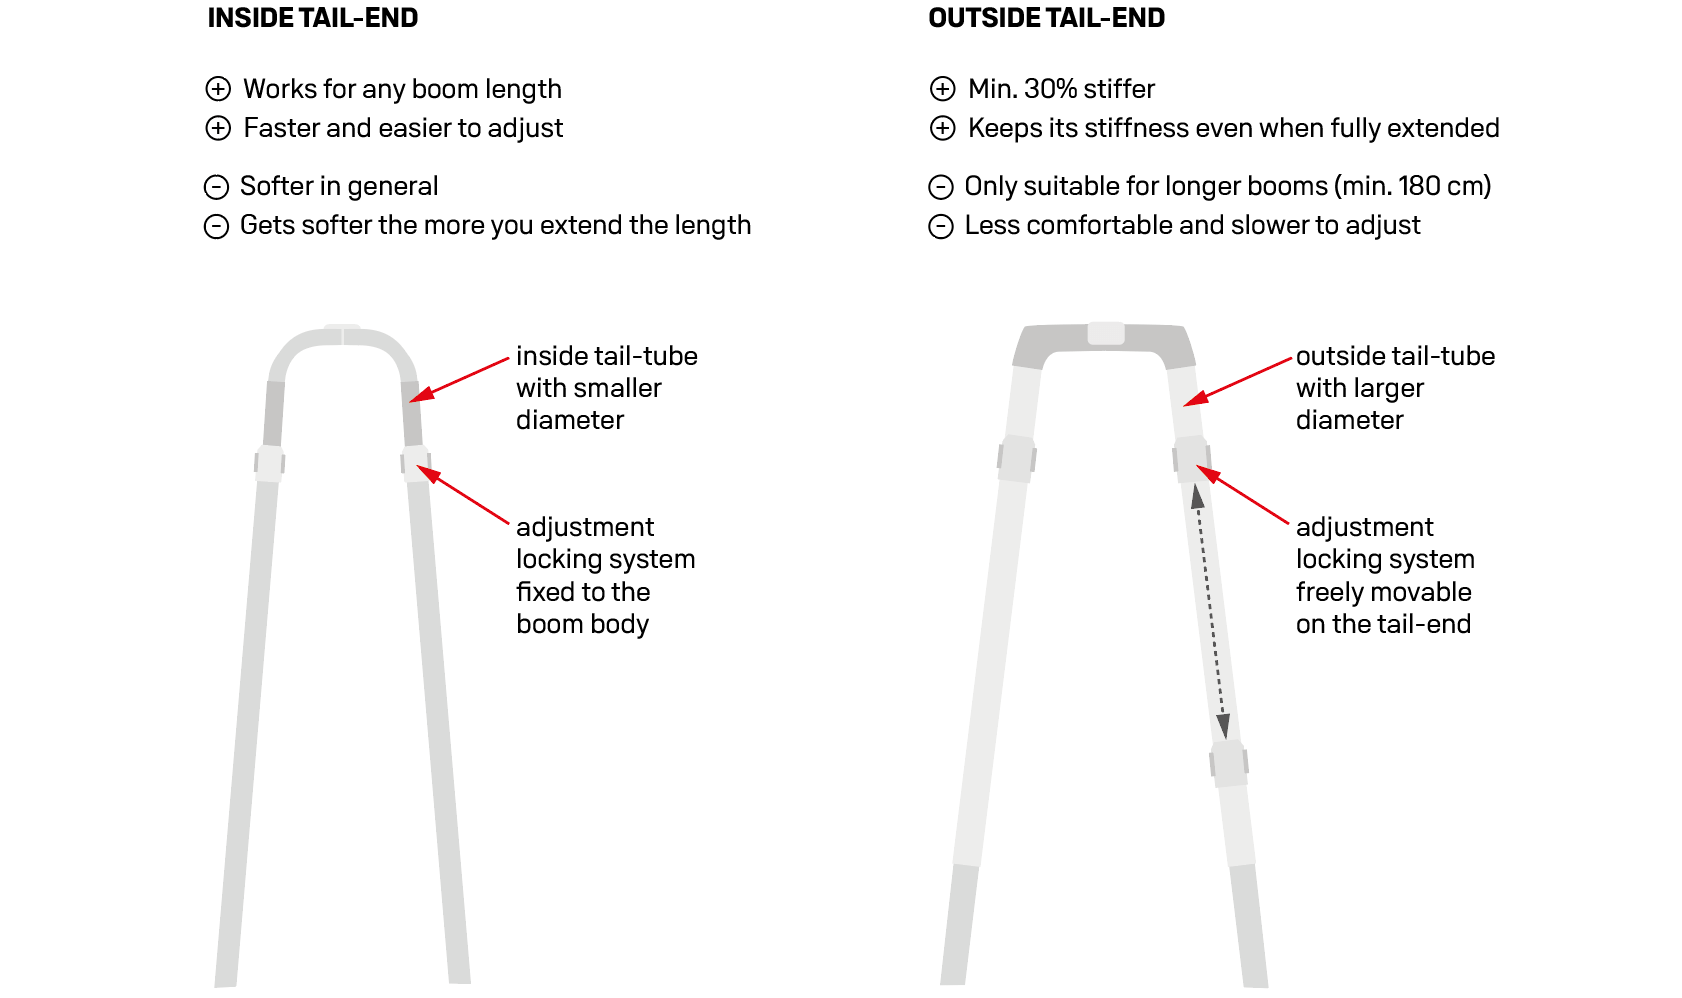 Tail-end: ease of use vs. stiffness vs. grip